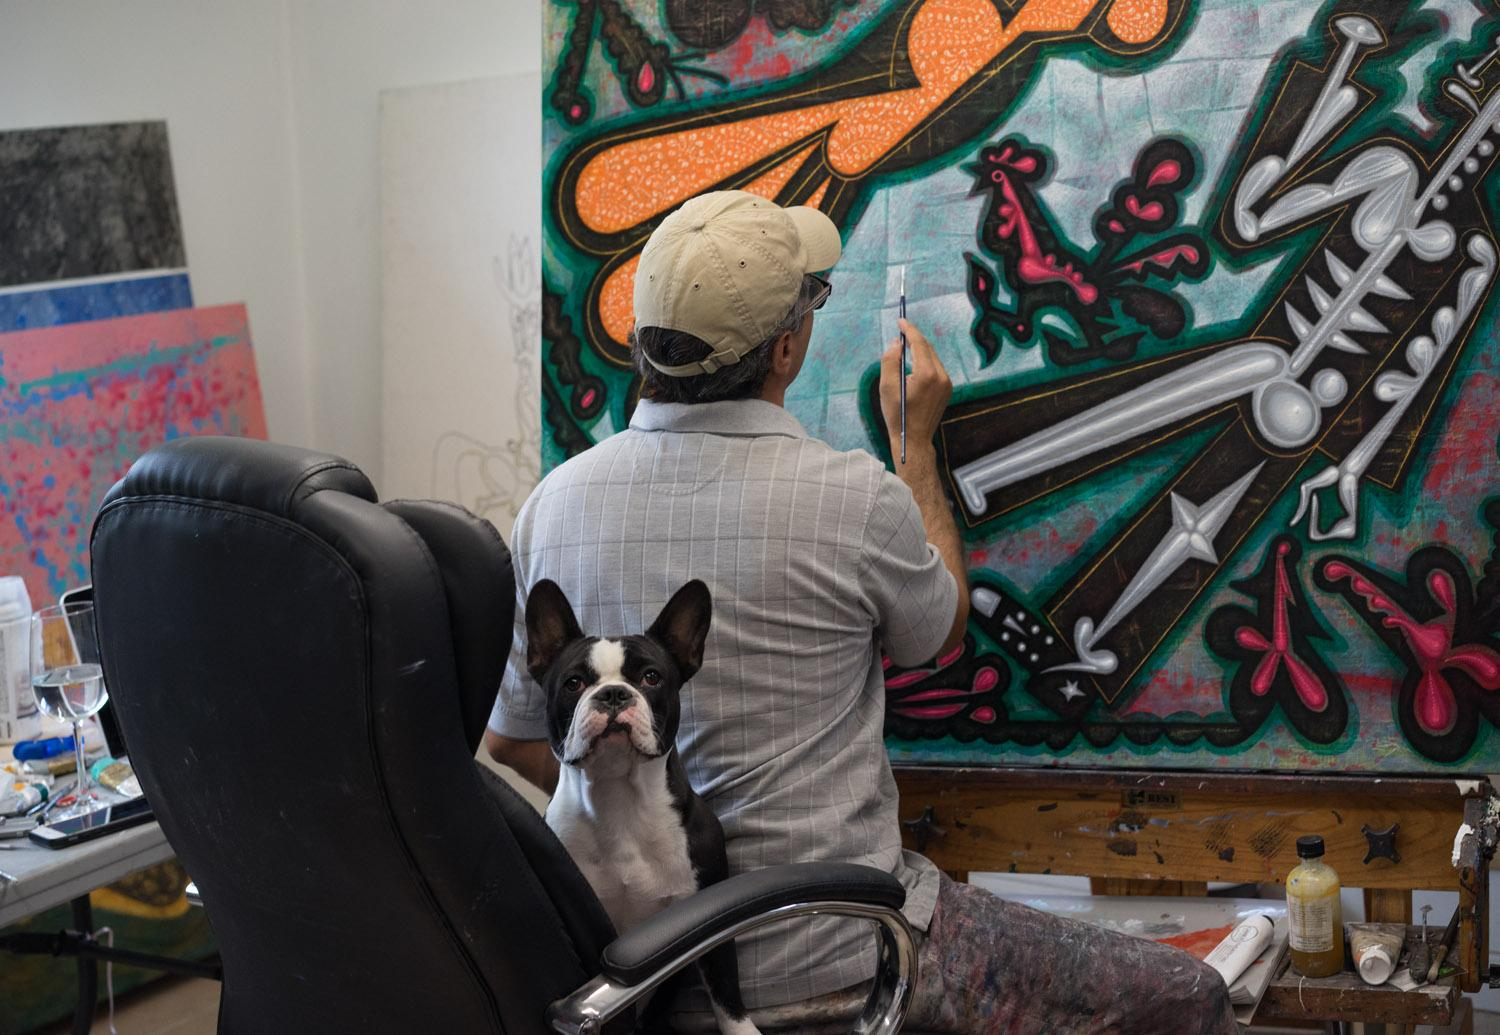 Carlos Luna working with his dog Cocoa, 2018